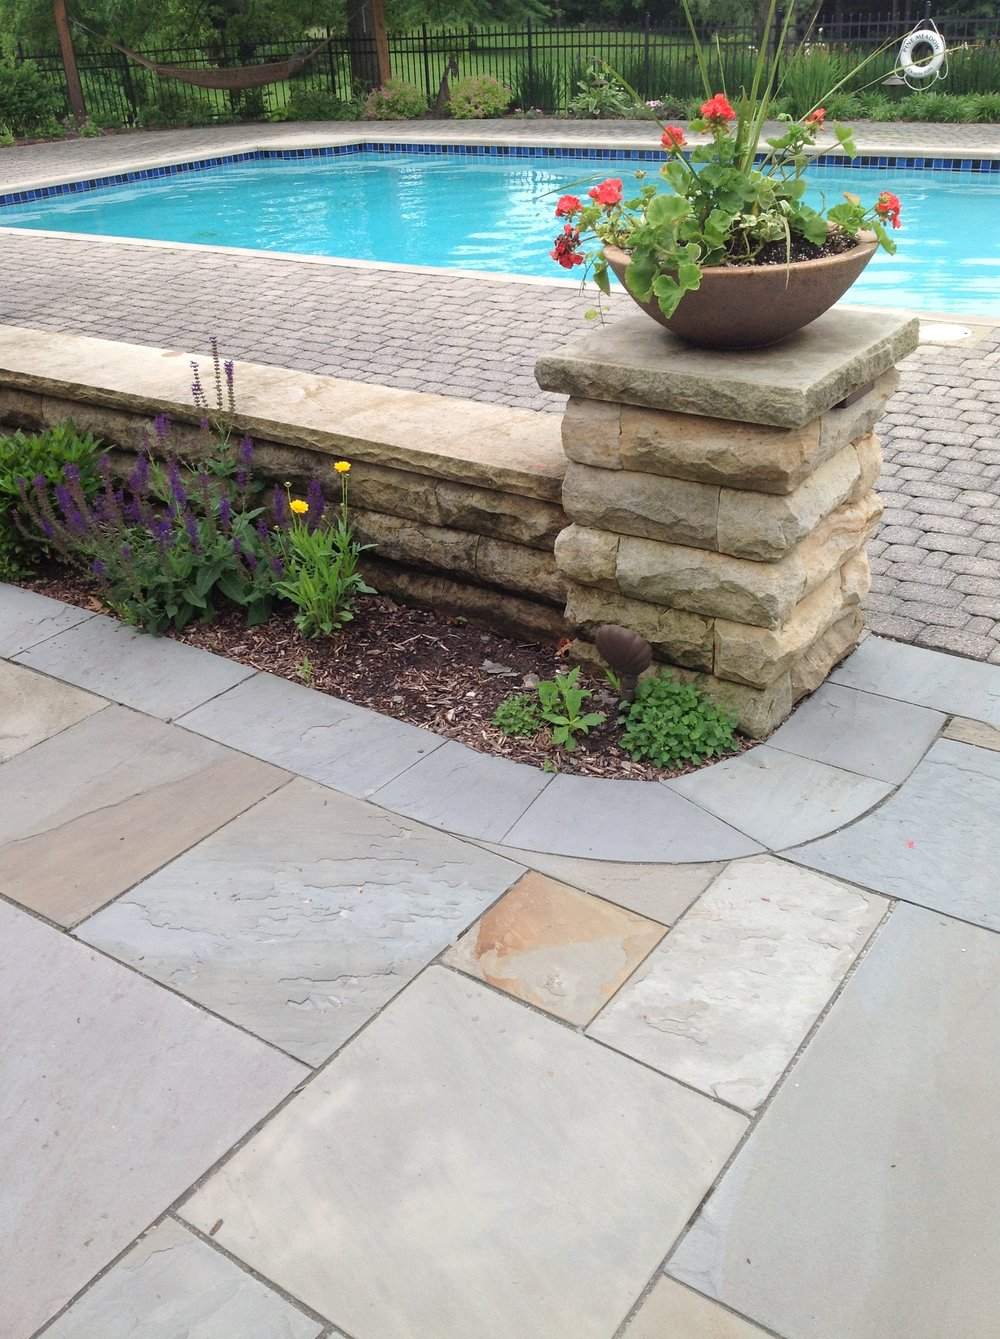 Unilock landscaping companies with top patio pavers and retaining wall in Novelty, OH